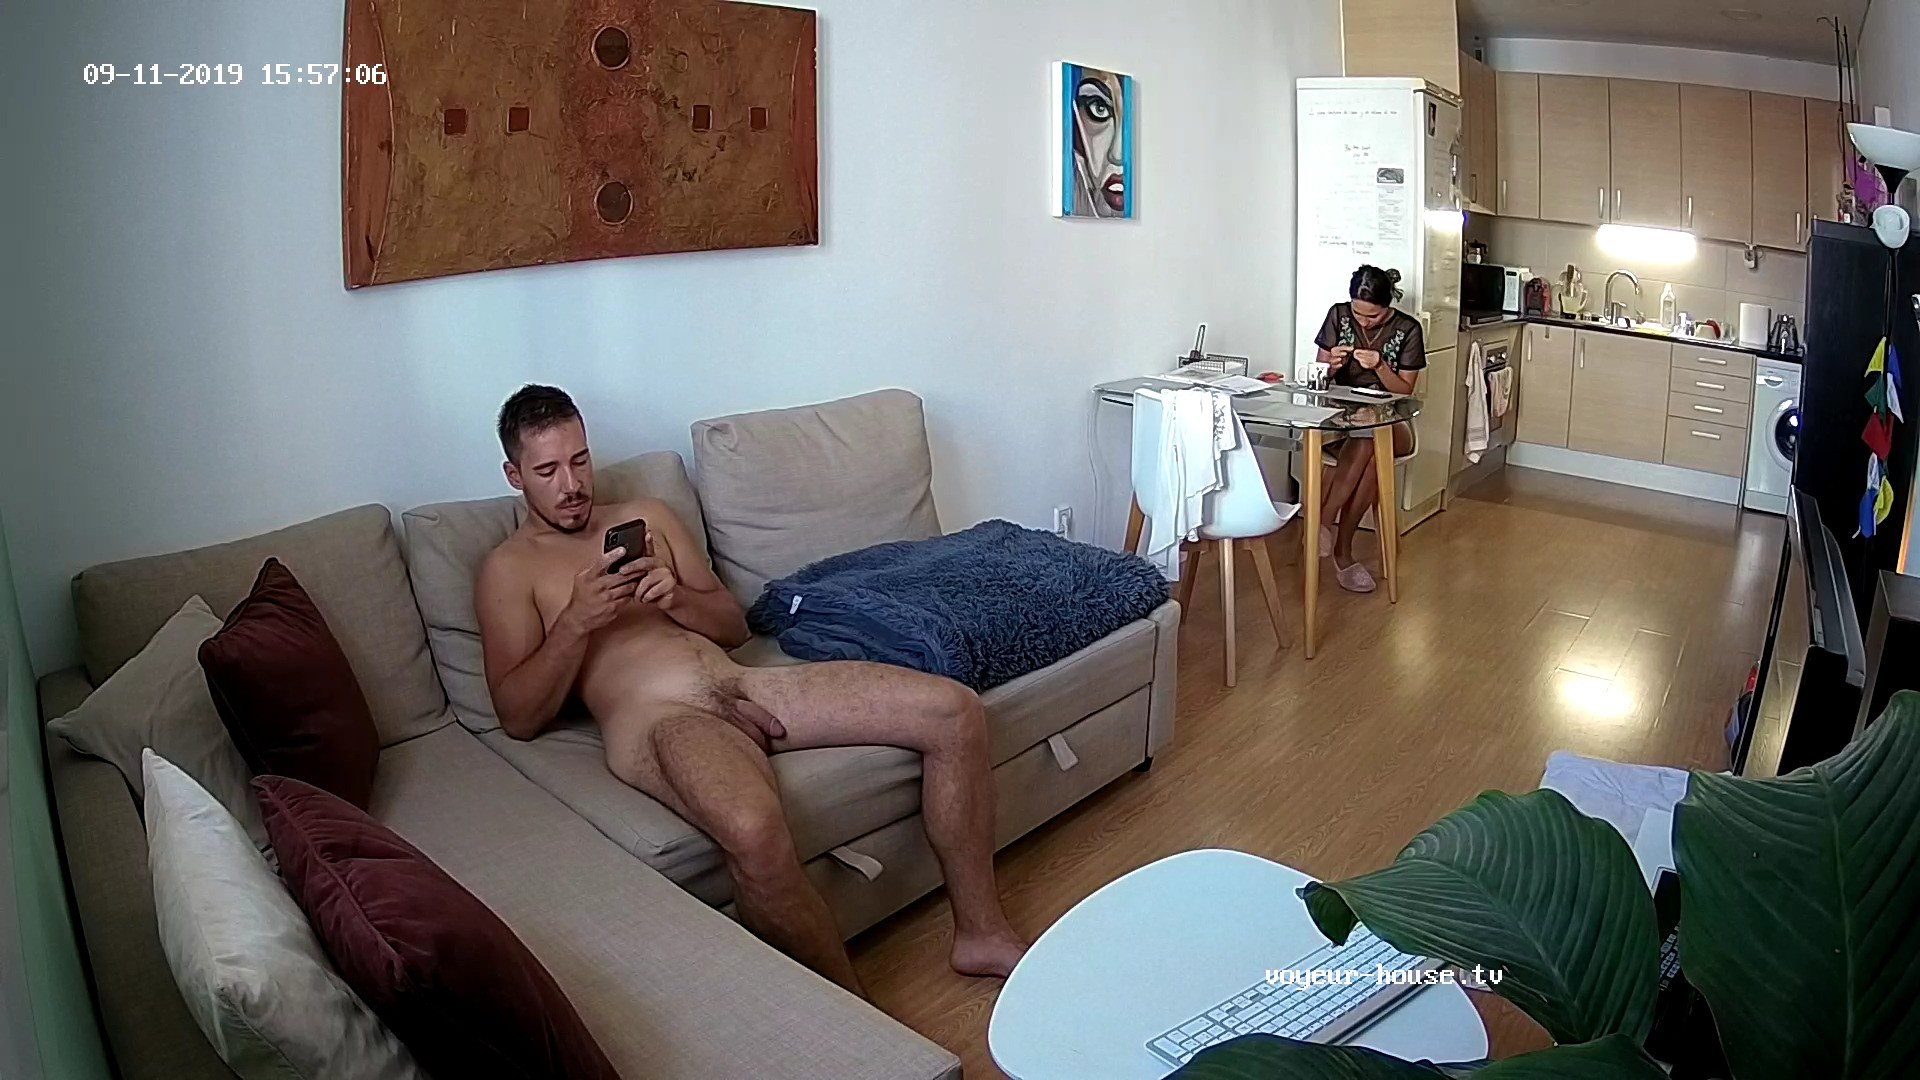 Karl naked in livingroom 11 Sep 2019